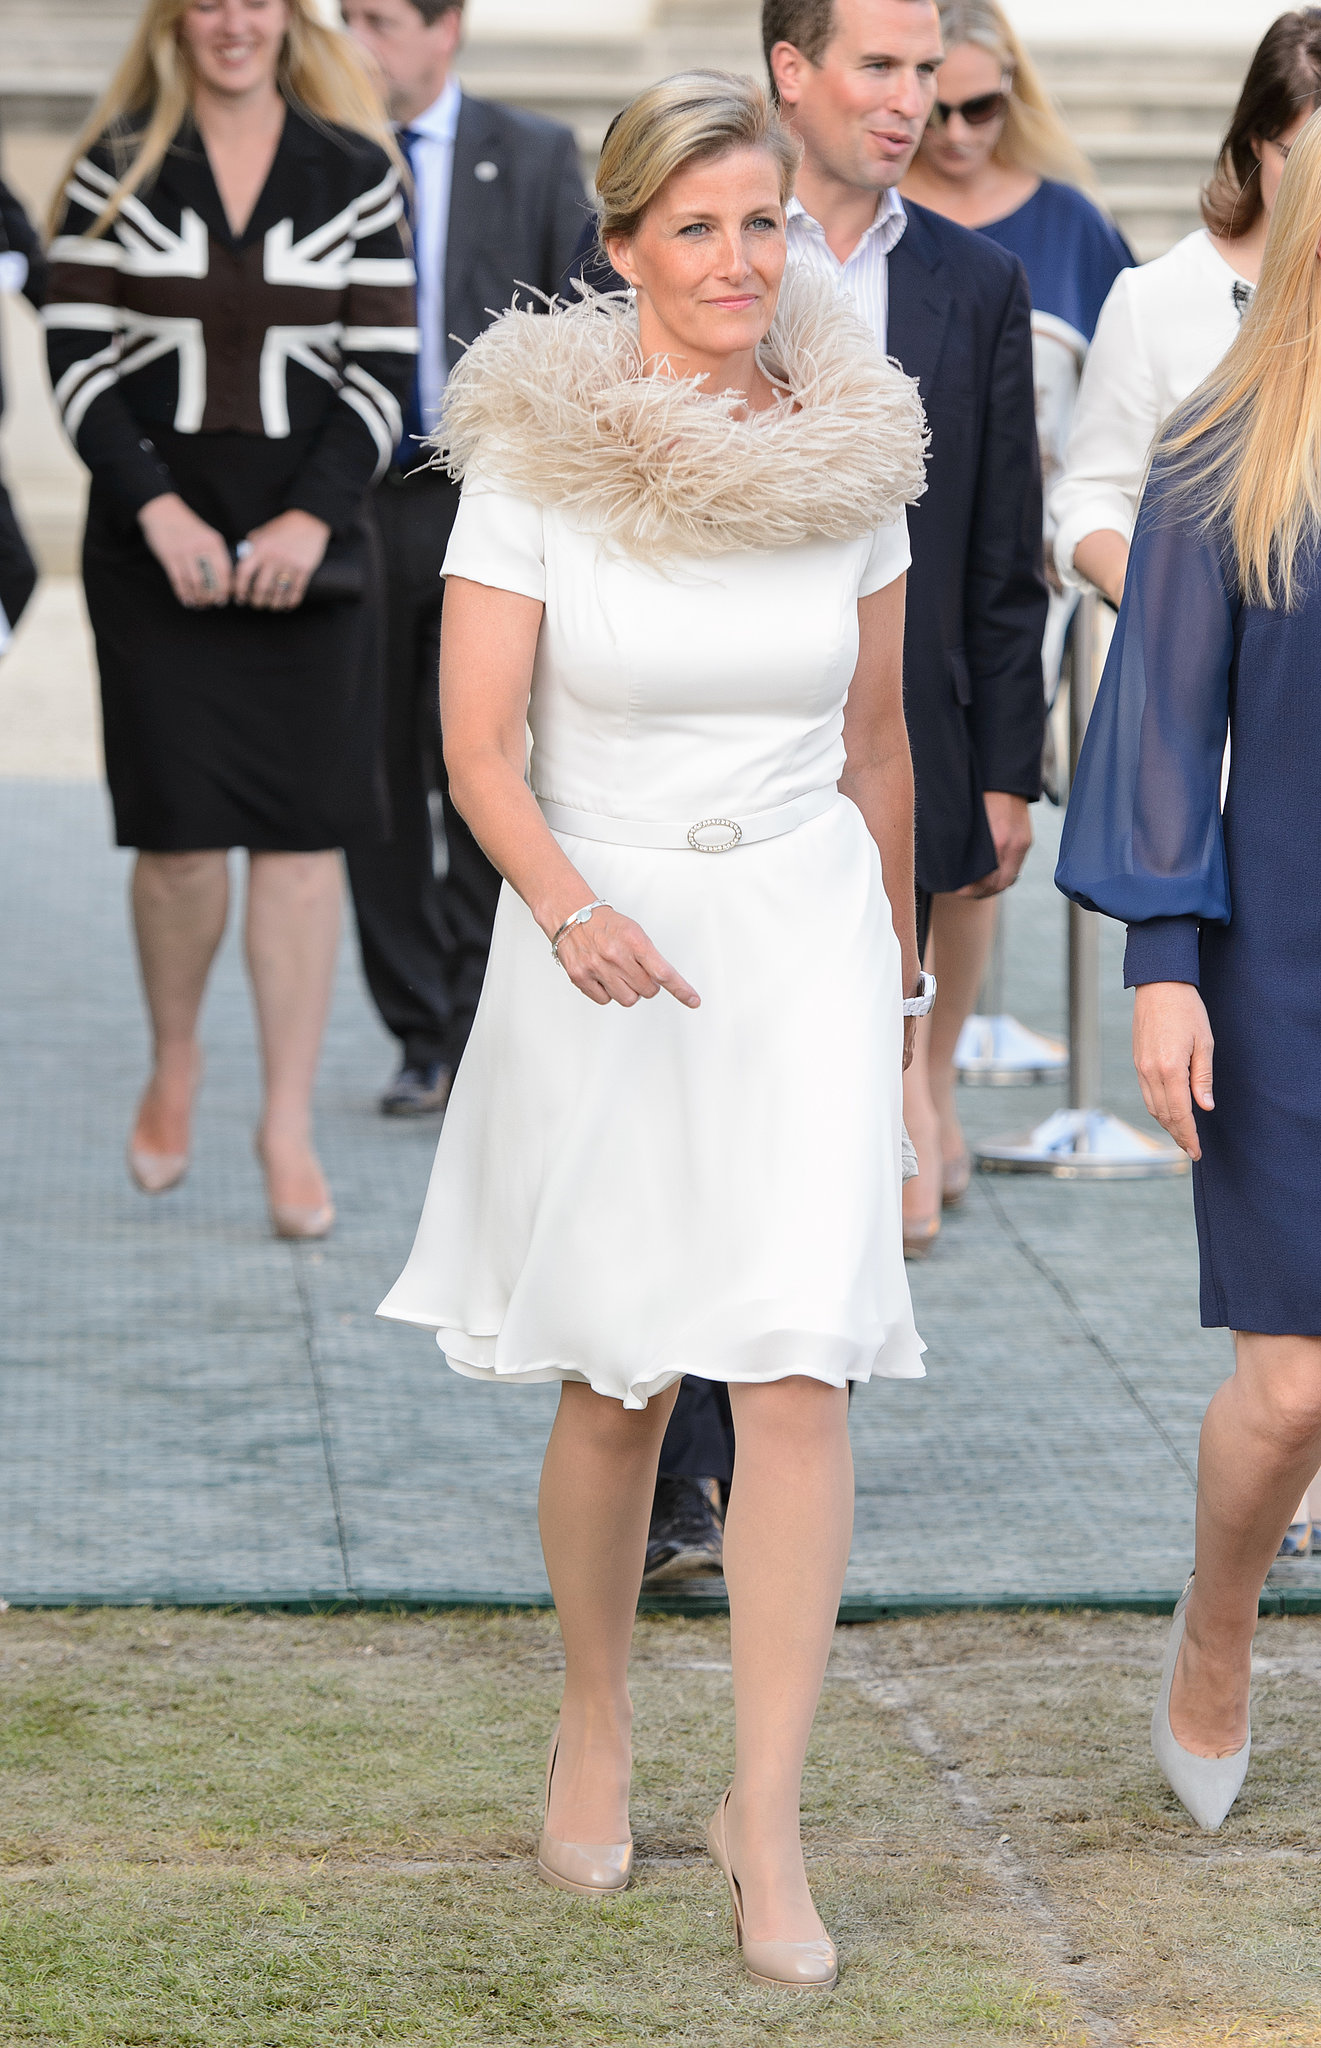 Sophie-Countess-Wessex-gala-Buckingham-Palace